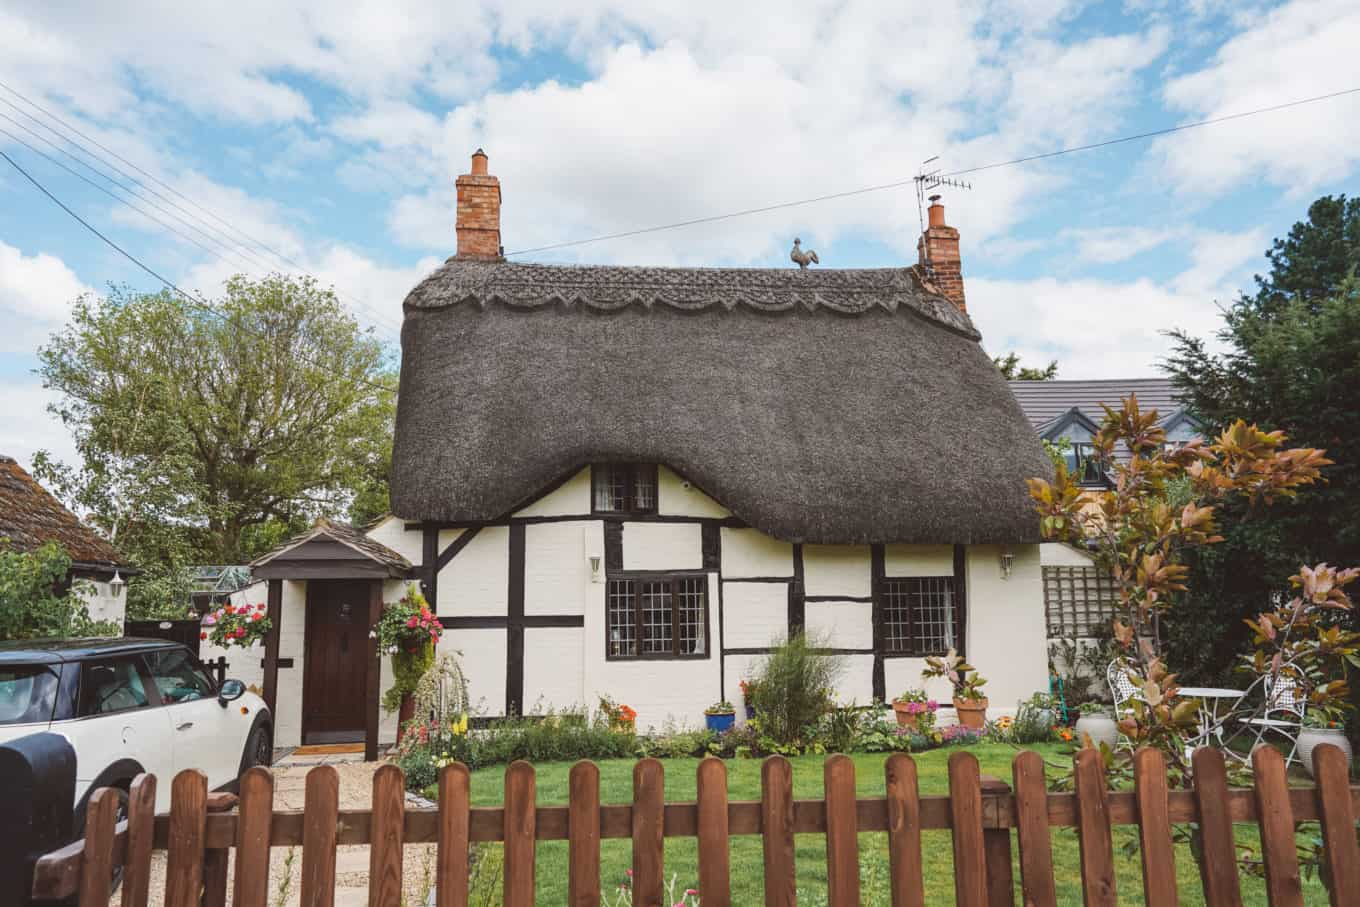 Welford-on-Avon the prettiest thatched village in England